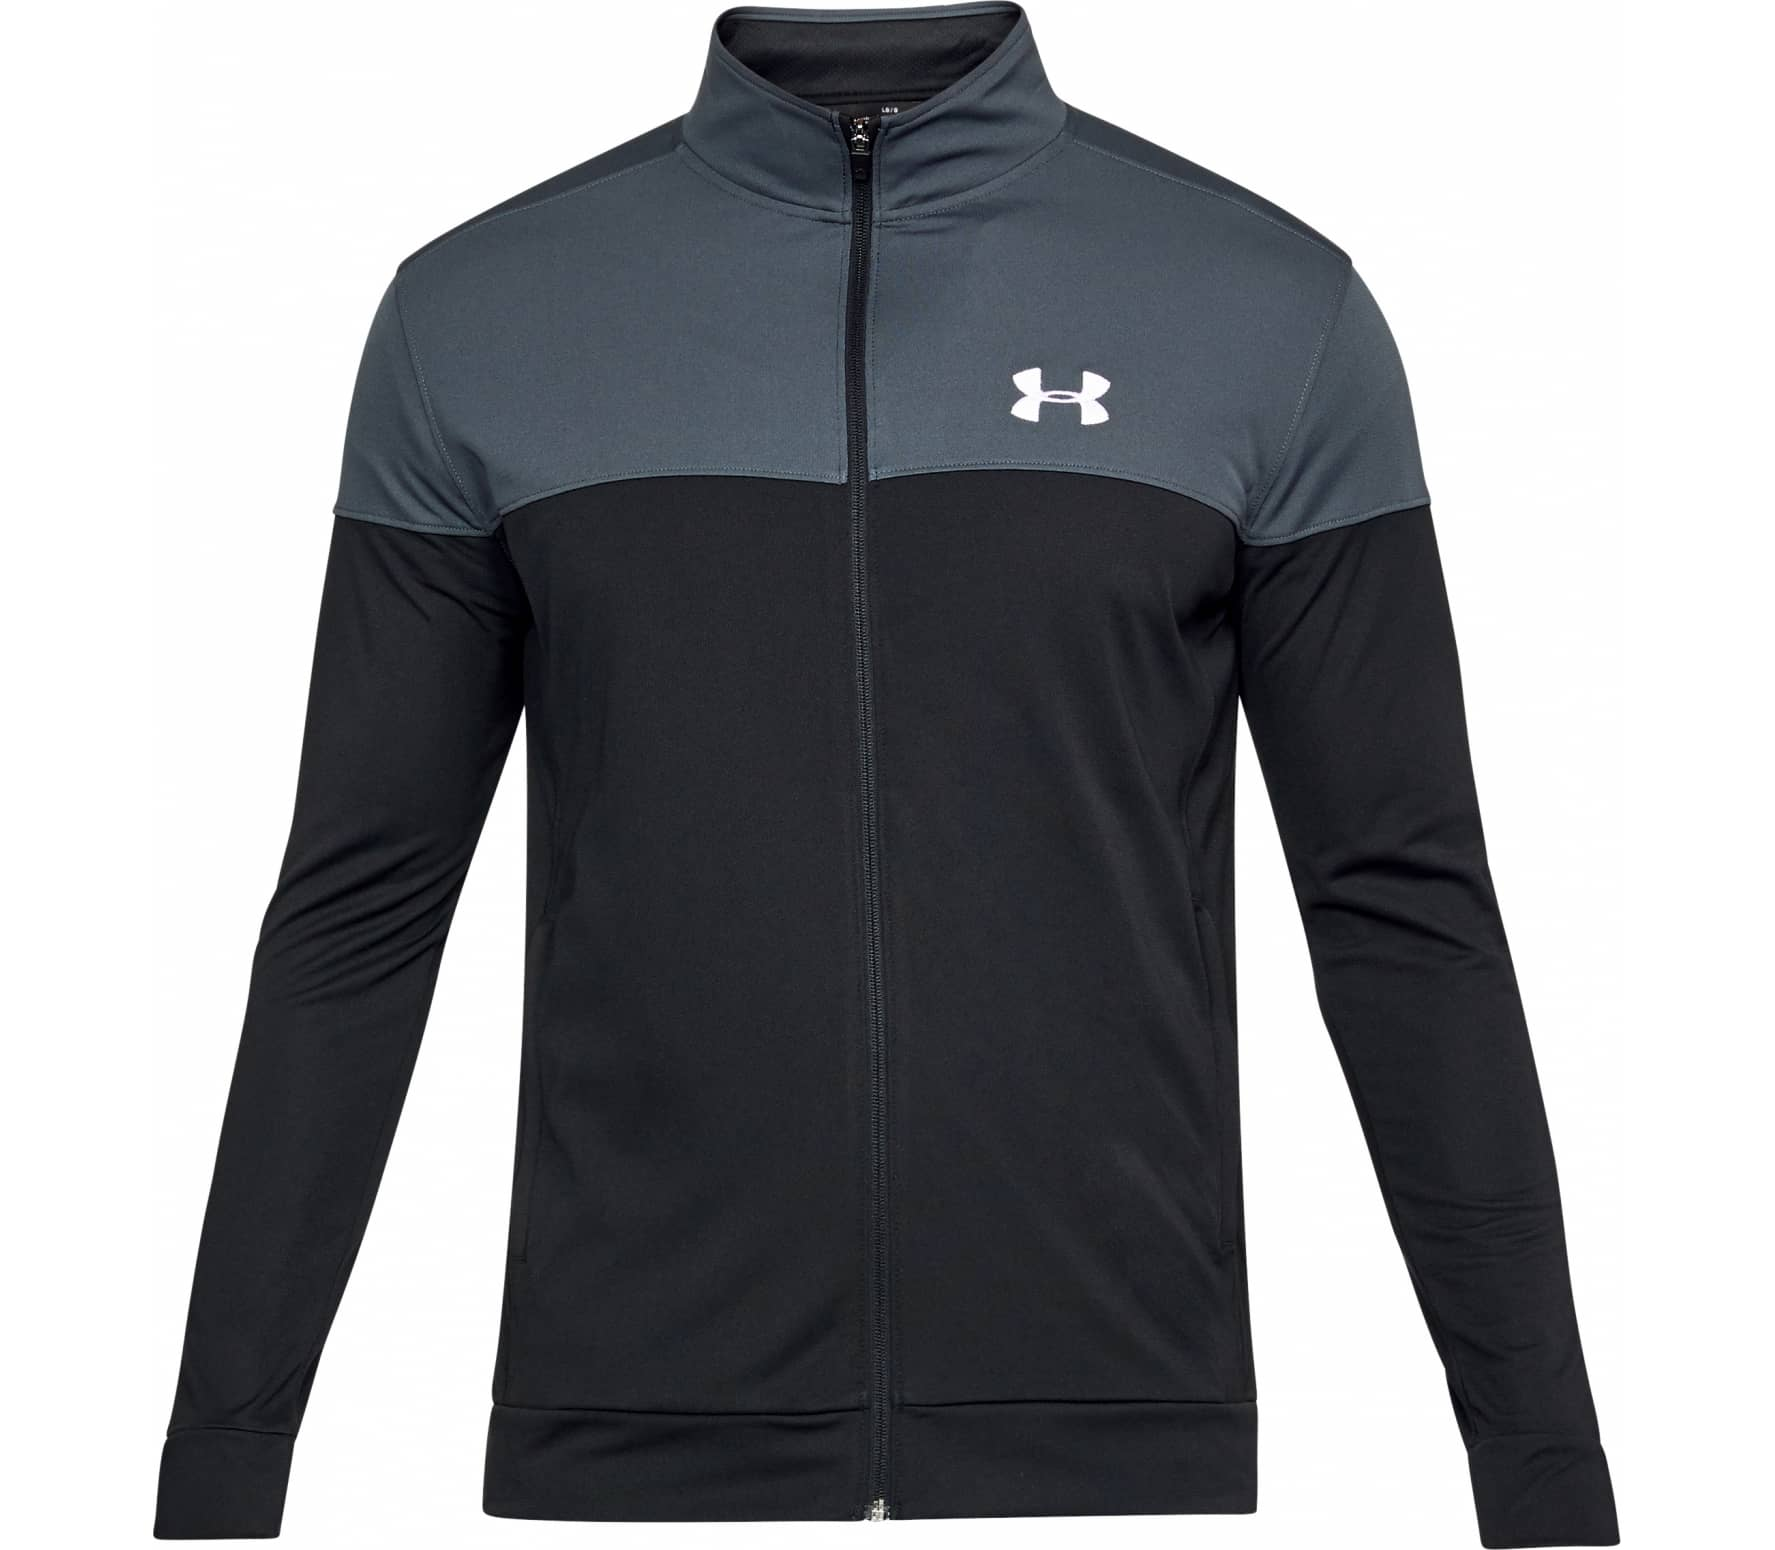 Under Armour - Swyft Racer men's running jacket (black/grey) - S thumbnail